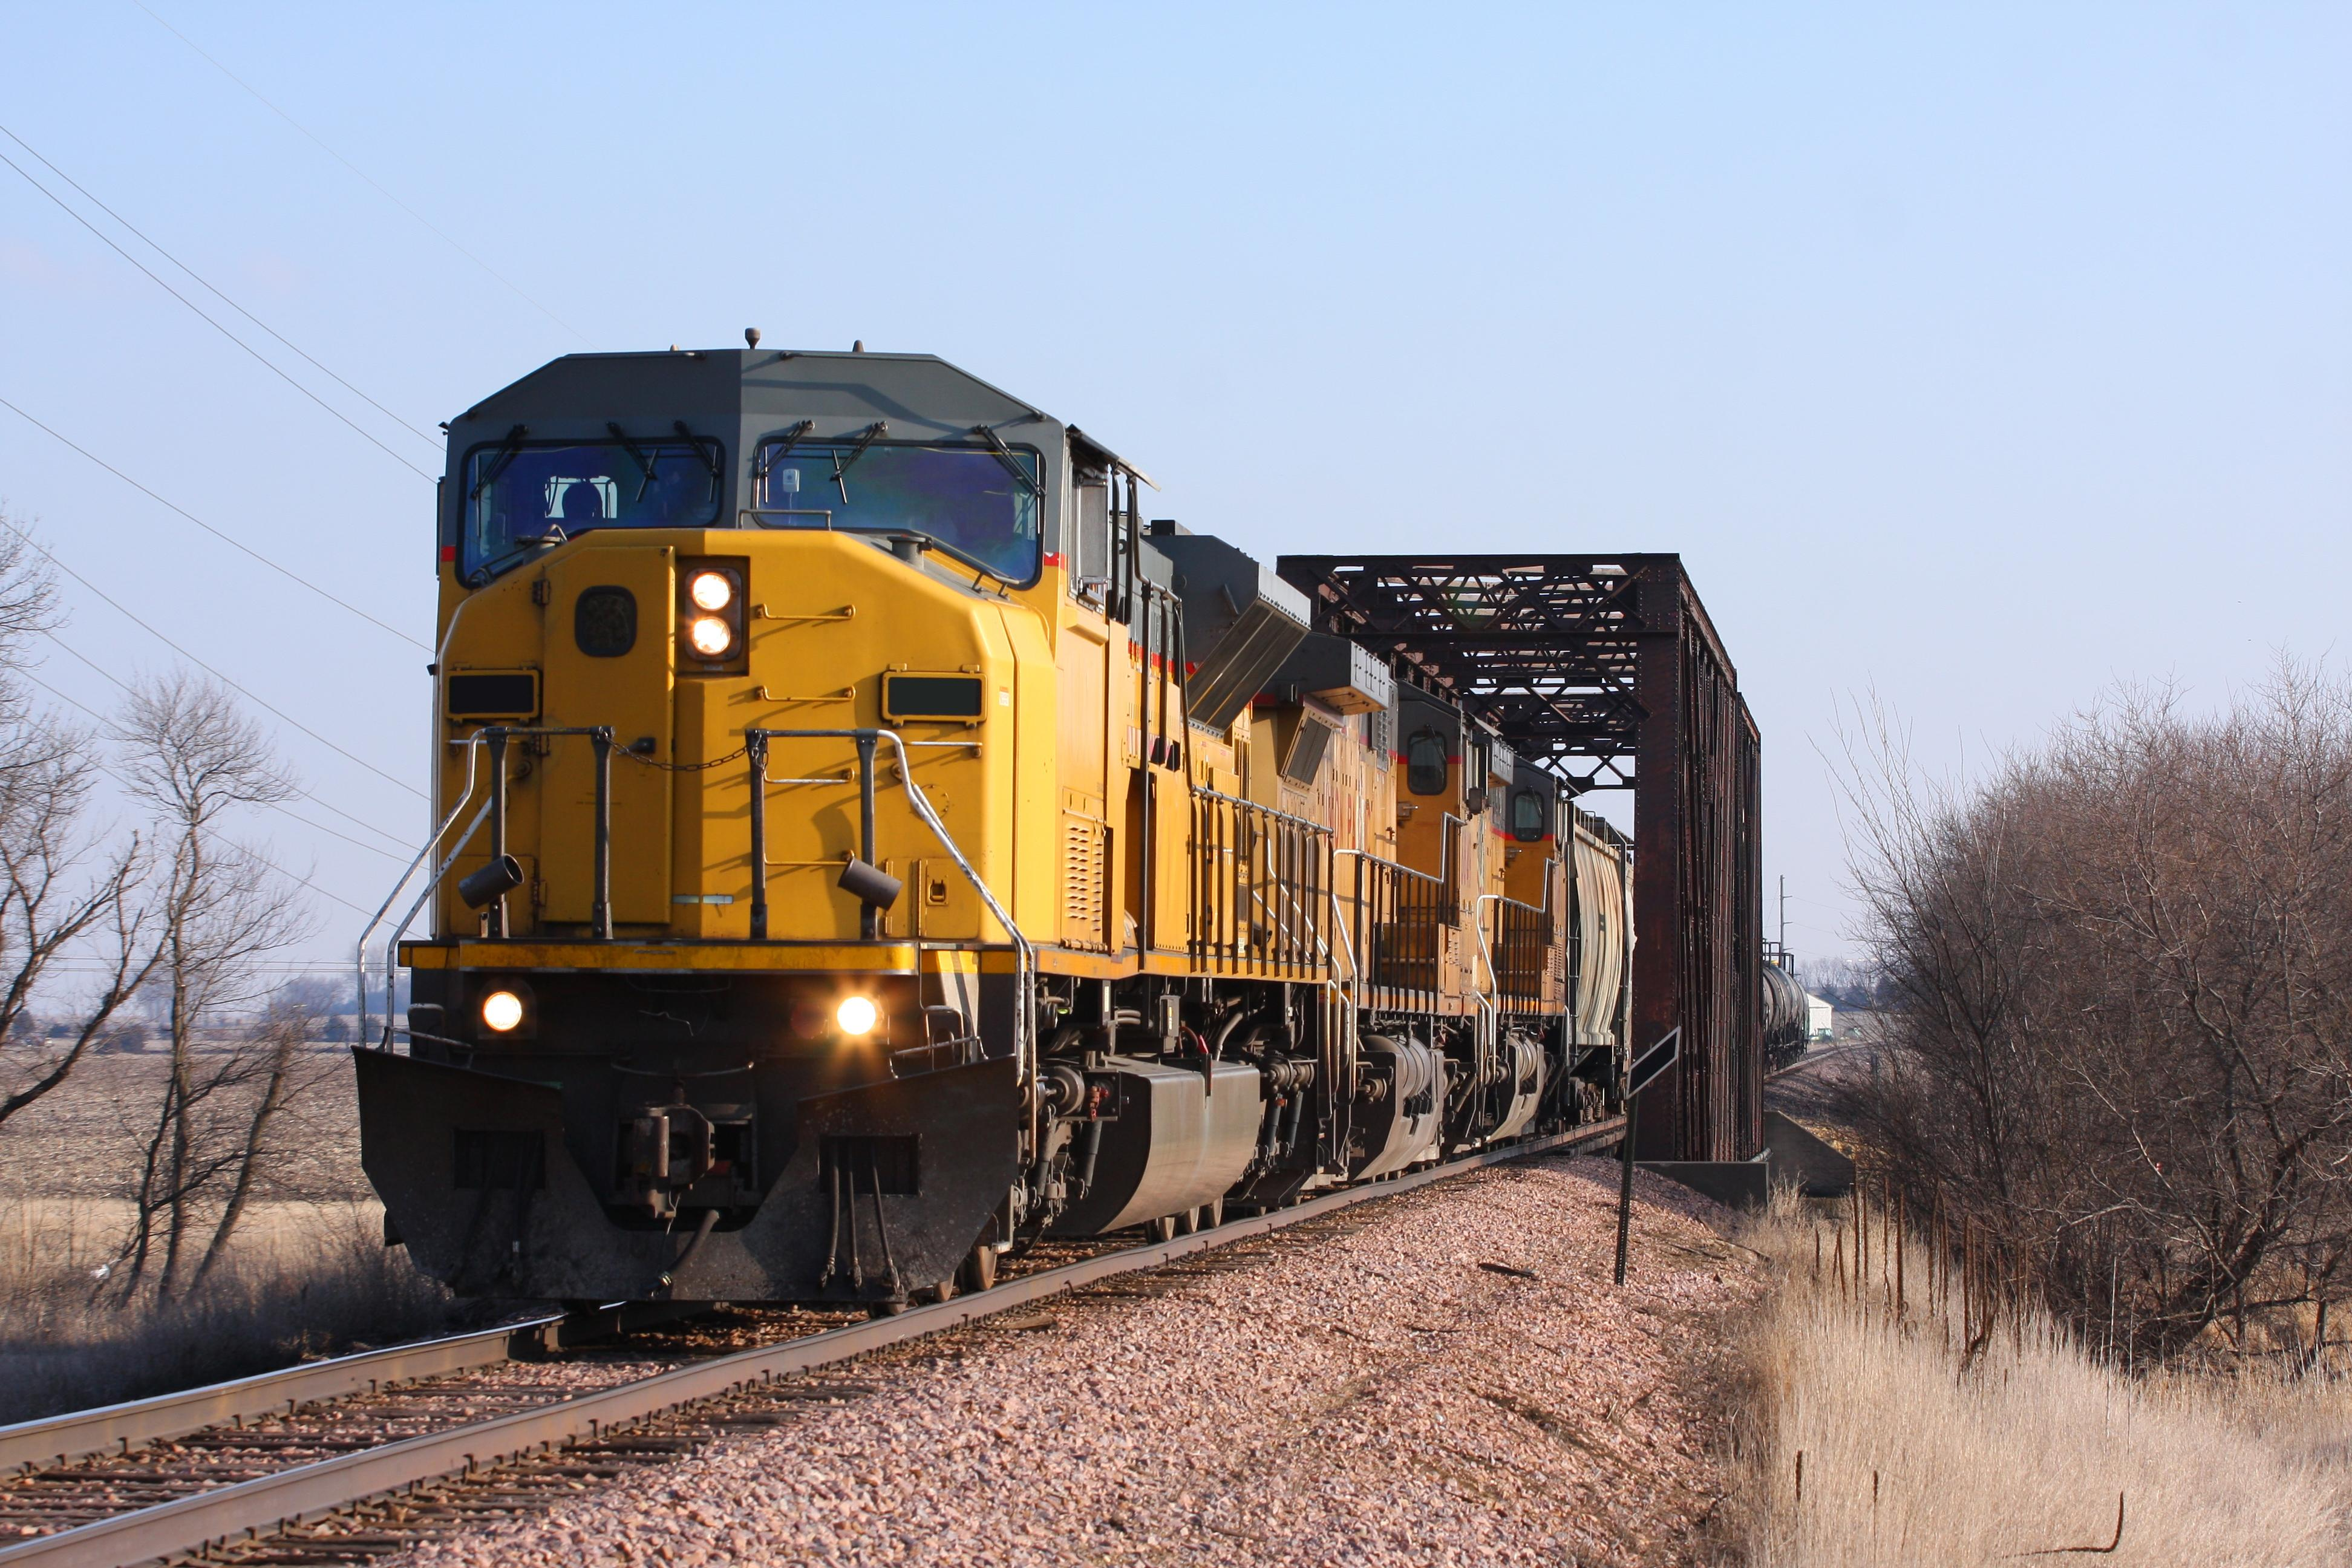 Union Pacific CEO: Trade tensions are 'definitely' impacting business